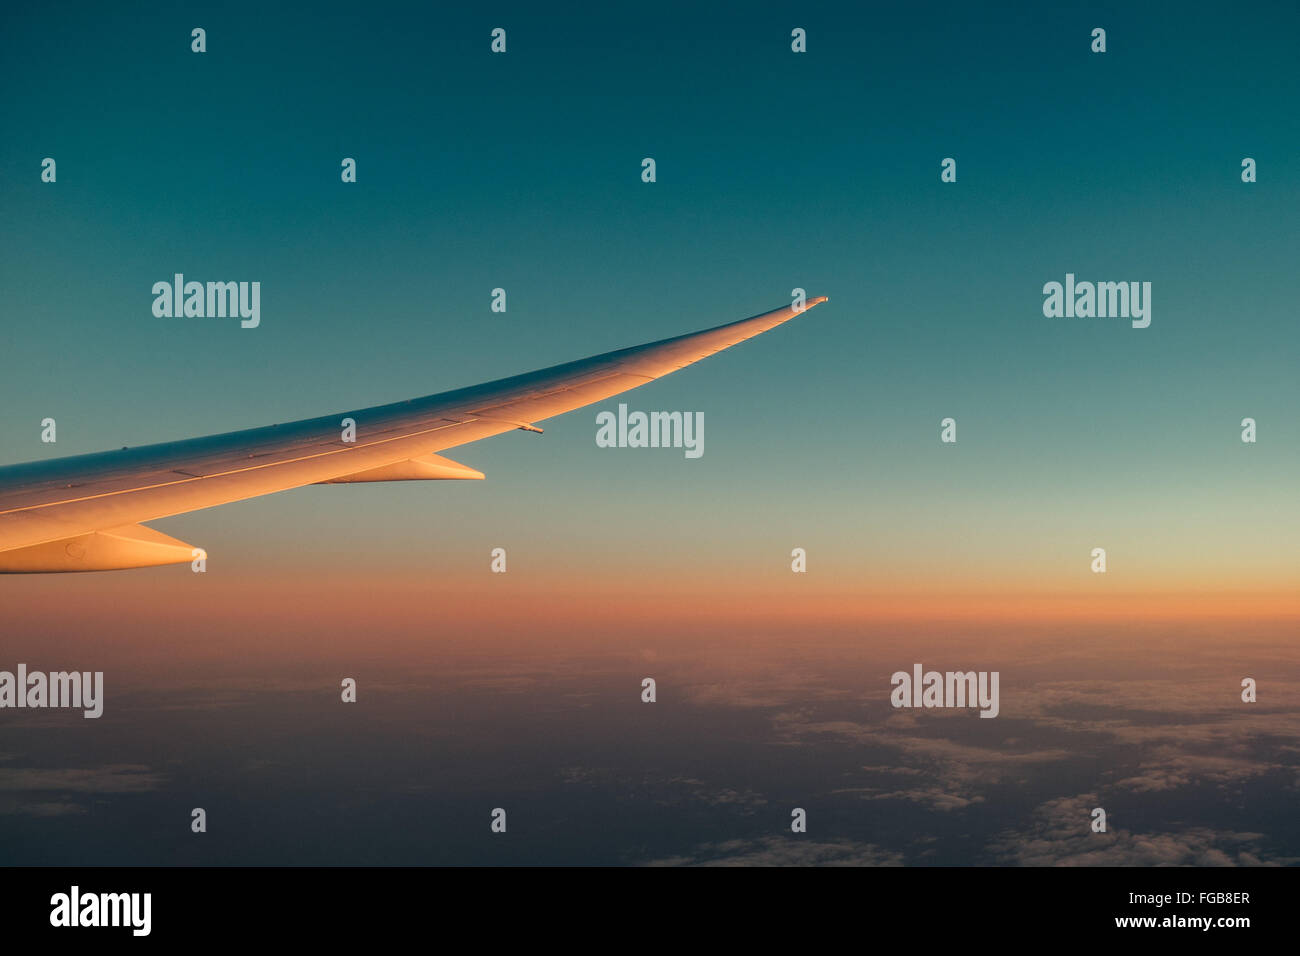 Cropped Airplane Wing Against Blue Sky - Stock Image